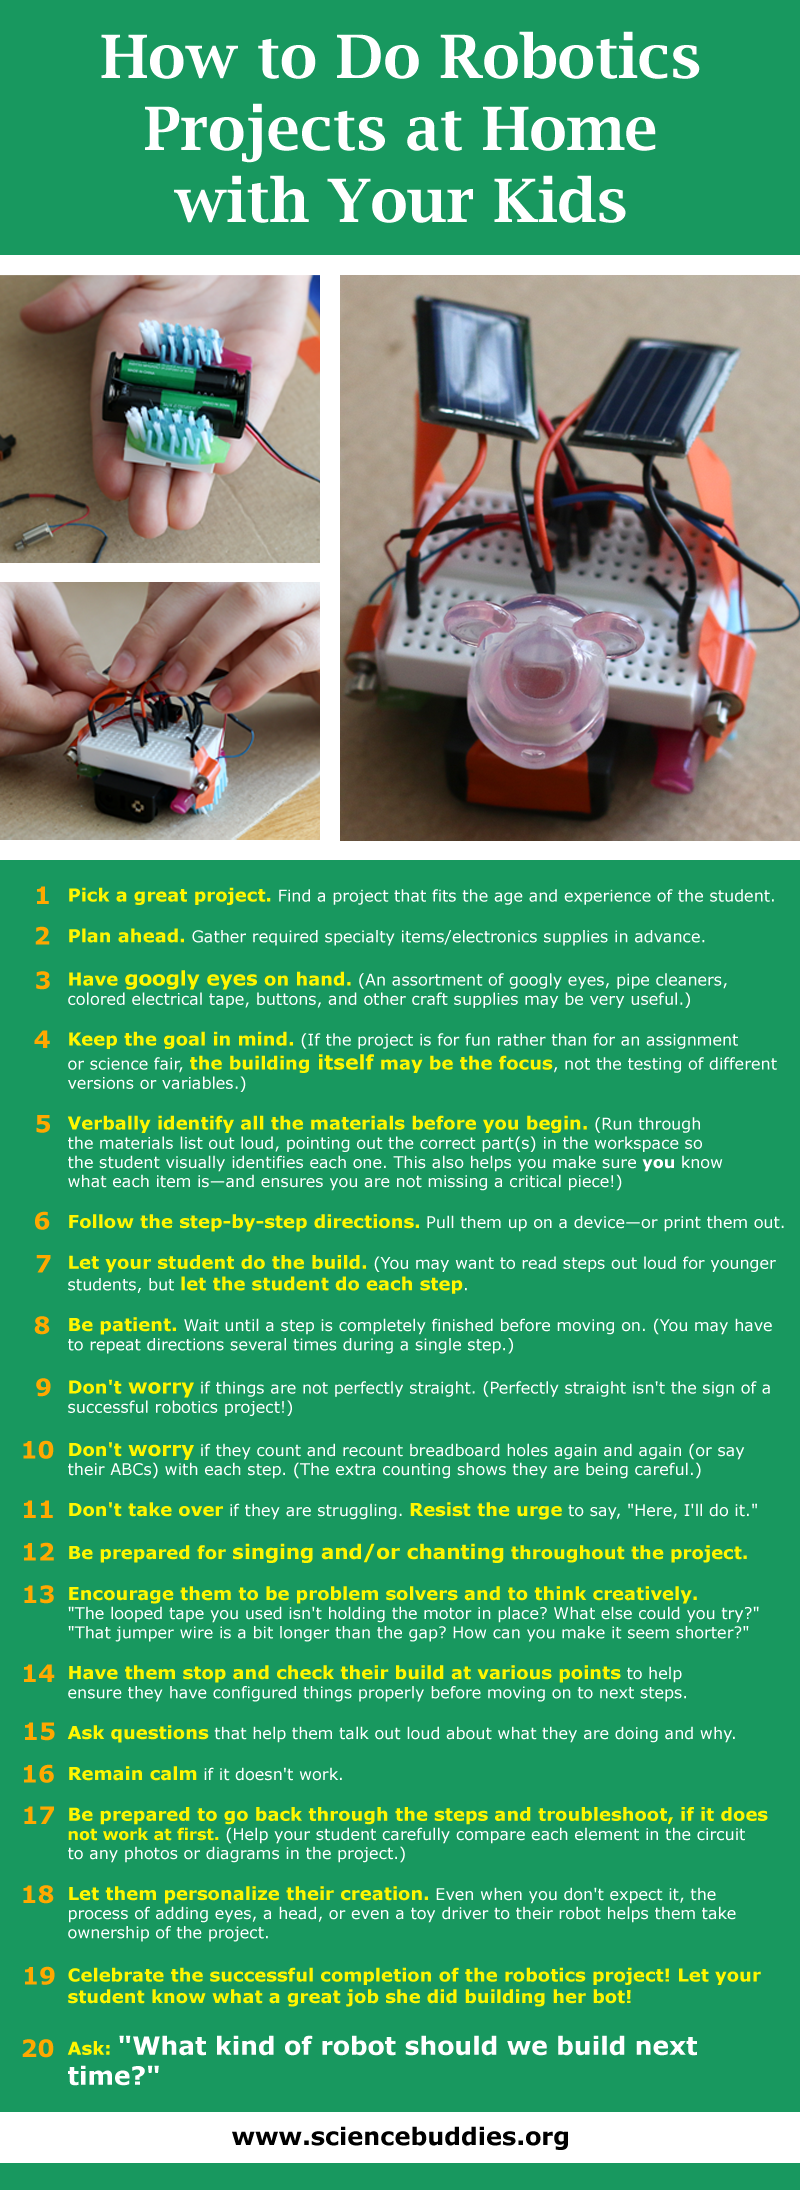 How To Do Robotics At Home With Your Kids Science Buddies Blog So Lets See Make Computer Controlled Robot For Project Click Here A Full Size Graphic Version